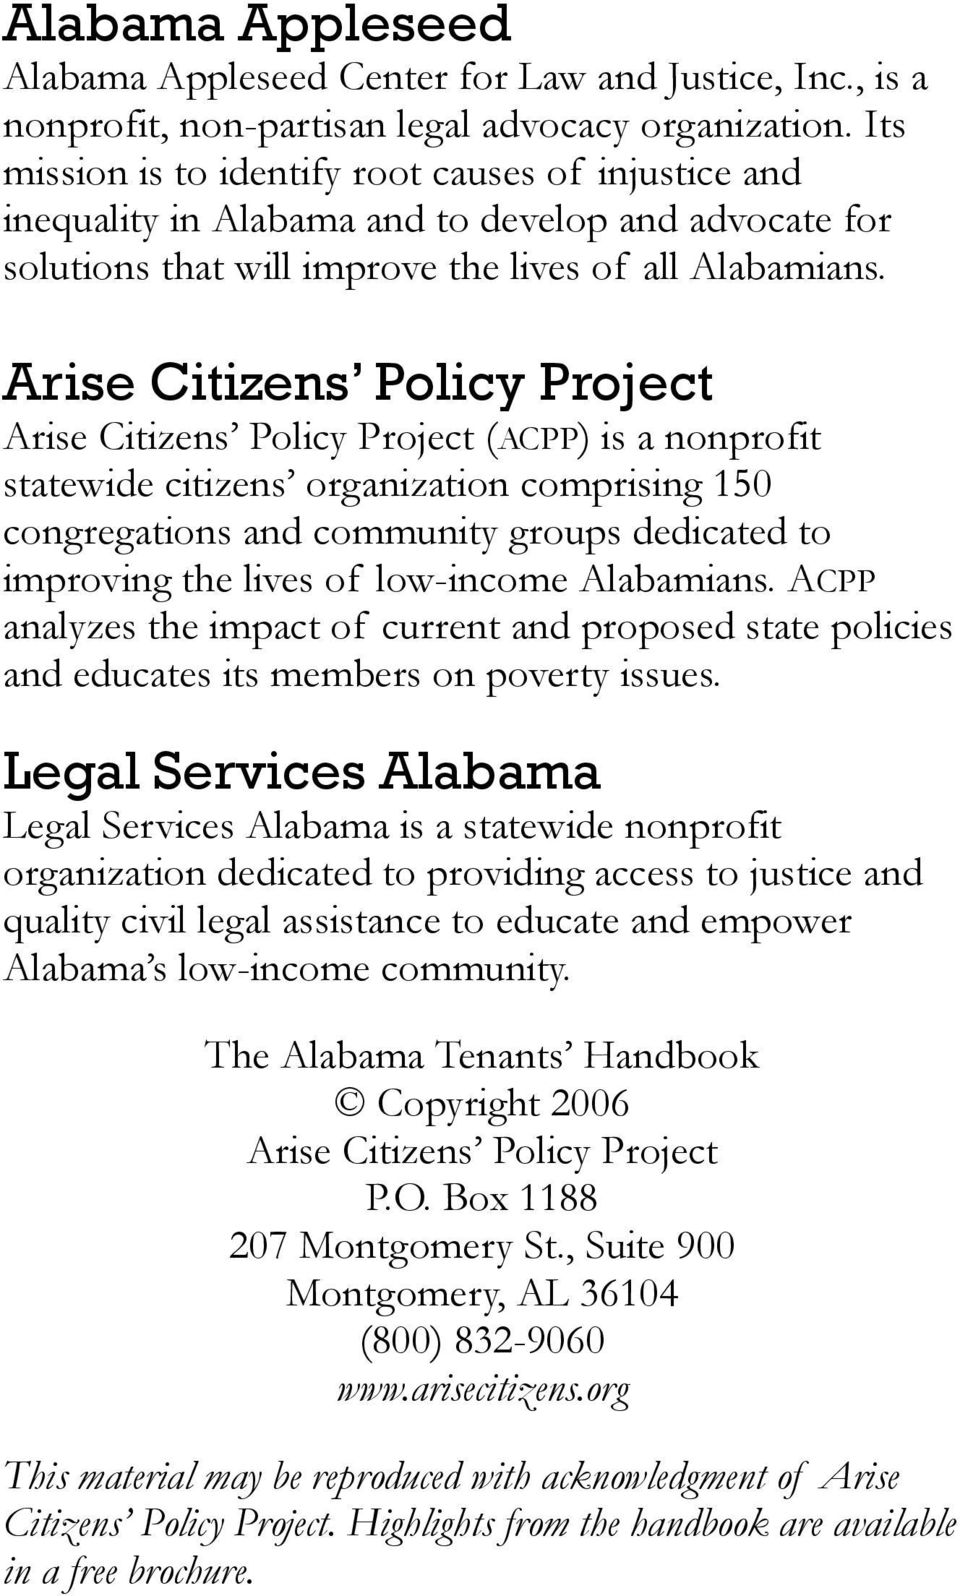 Arise Citizens Policy Project Arise Citizens Policy Project (ACPP) is a nonprofit statewide citizens organization comprising 150 congregations and community groups dedicated to improving the lives of